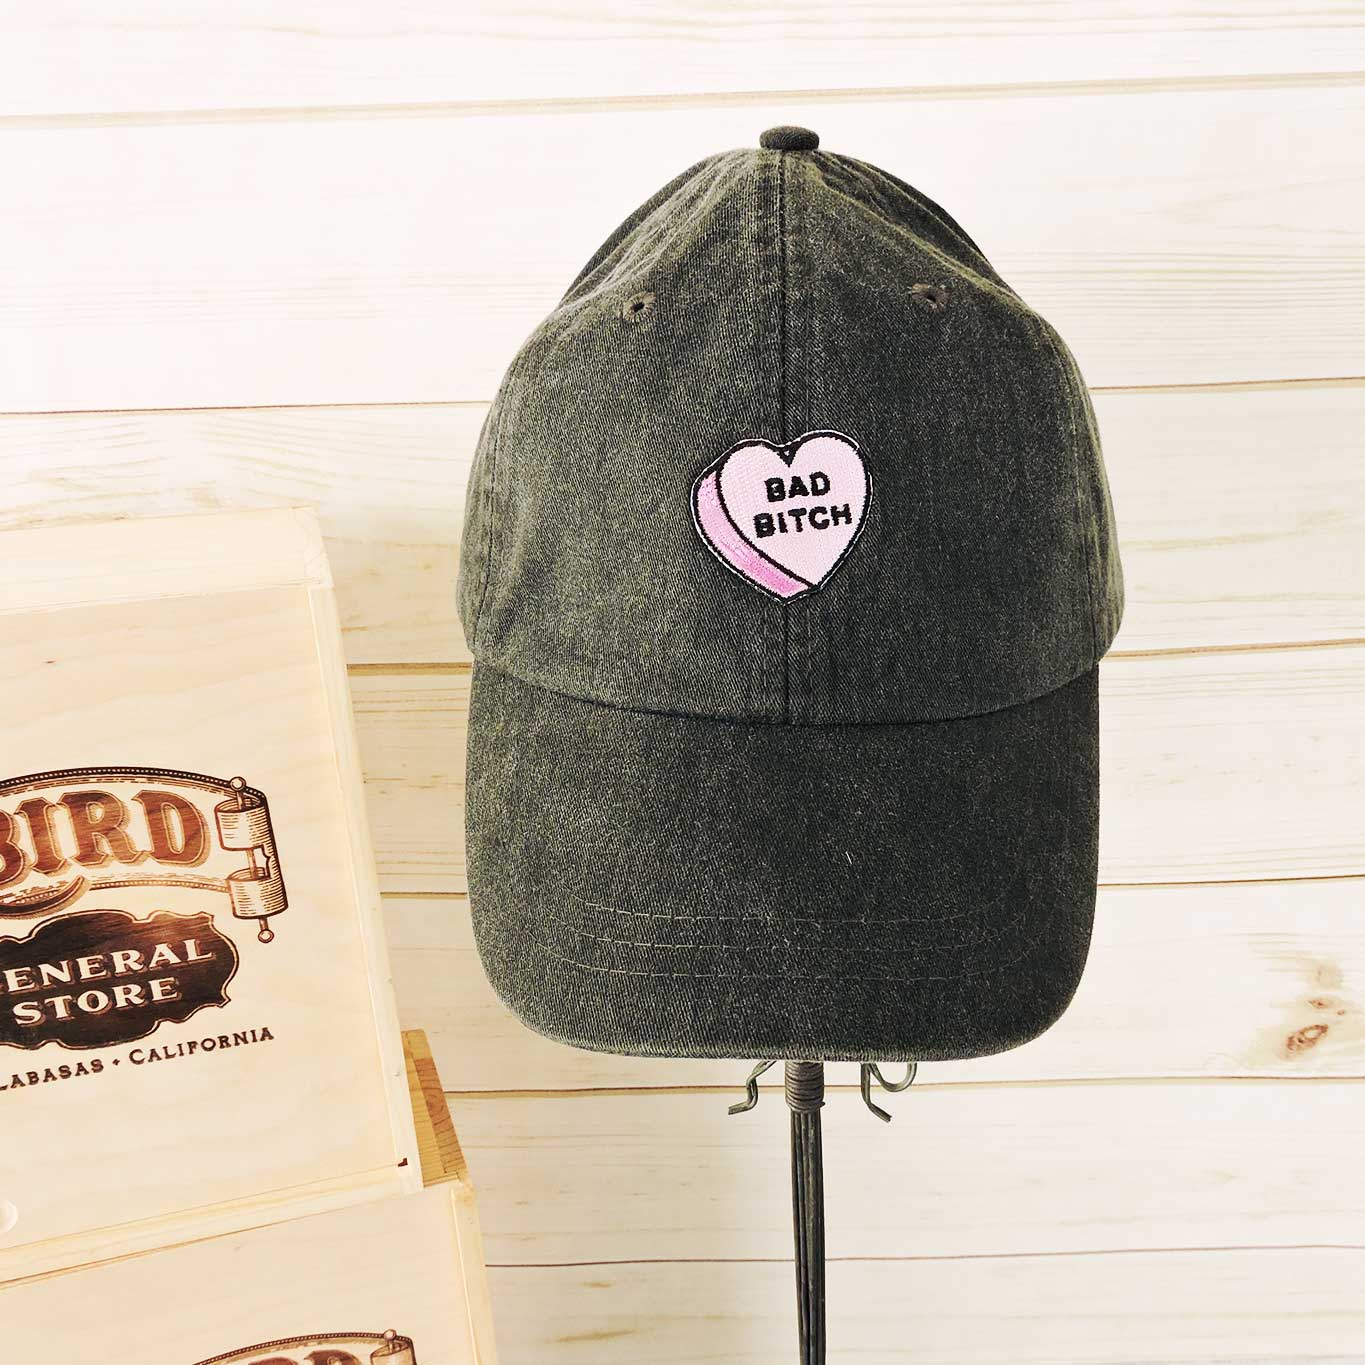 Bad Bitch Baseball Hat - Charcoal - Blackbird General Store